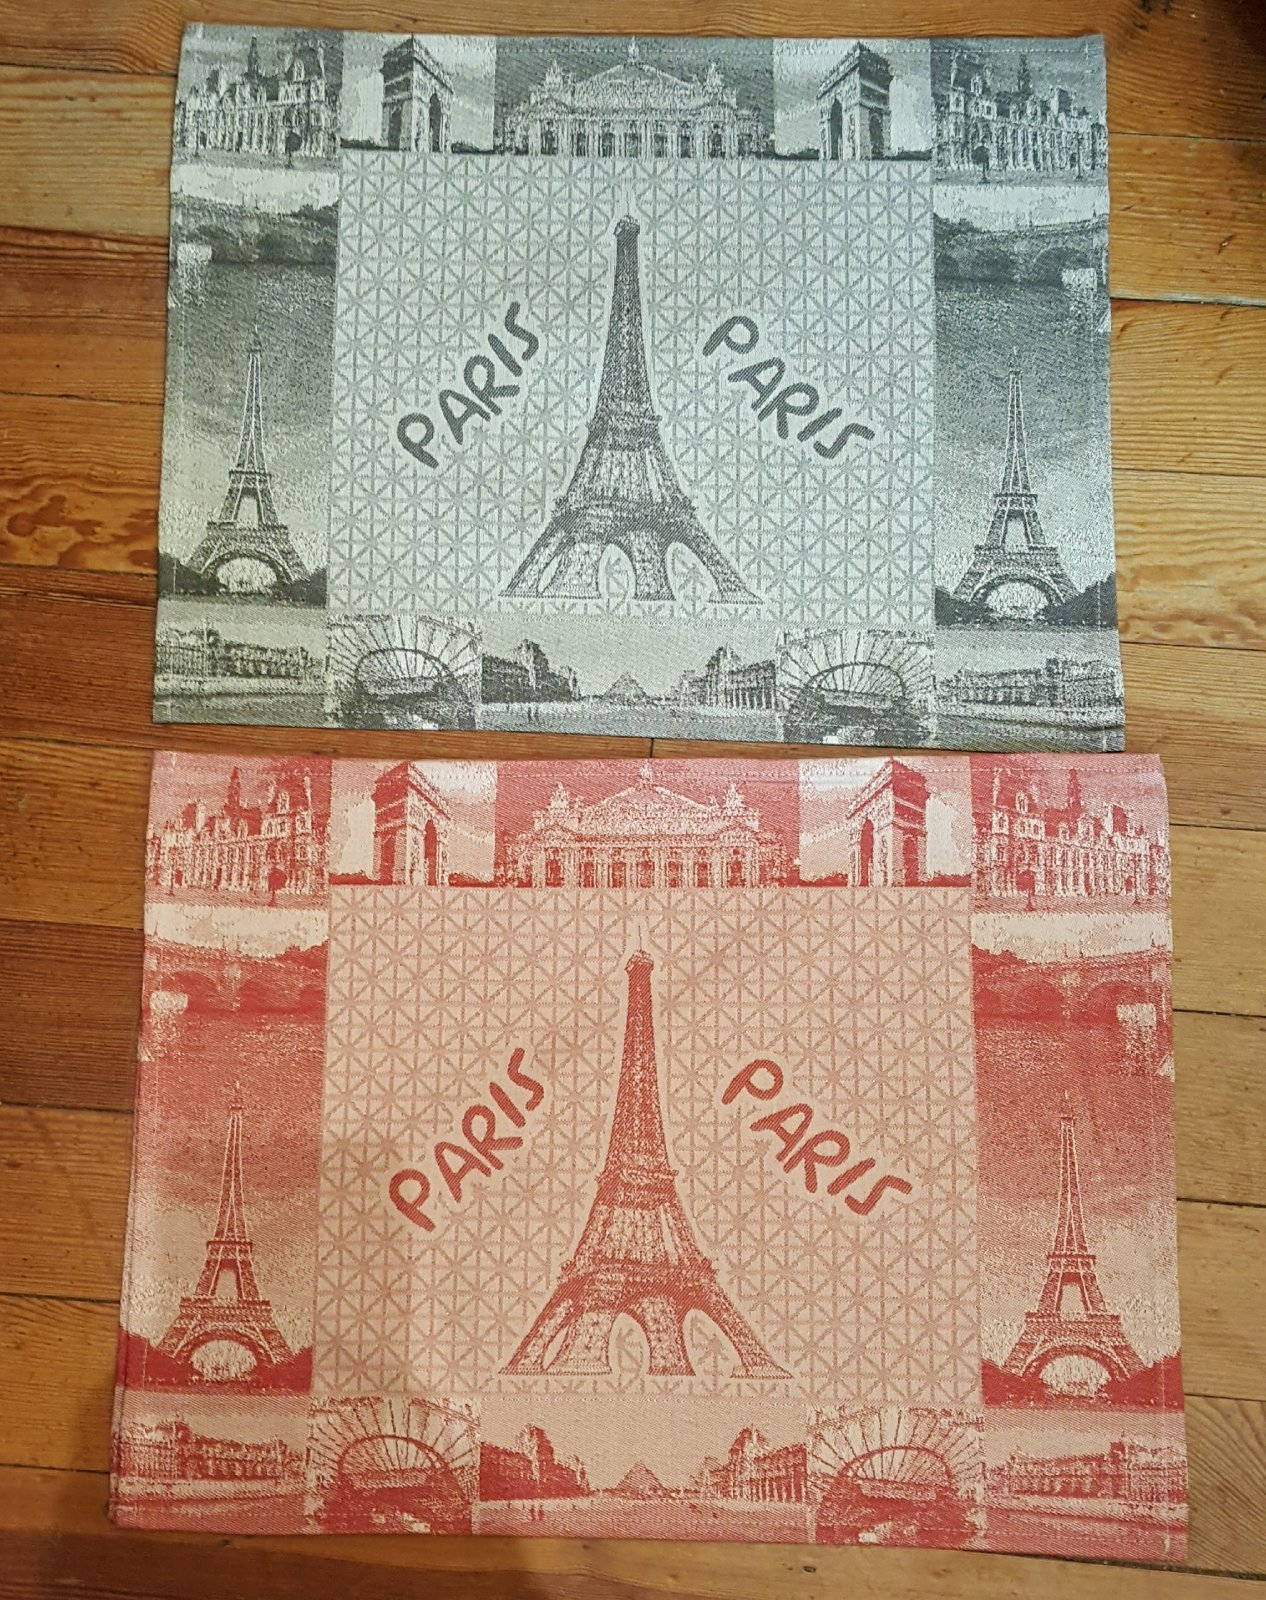 St Roch Paris placemat (red)